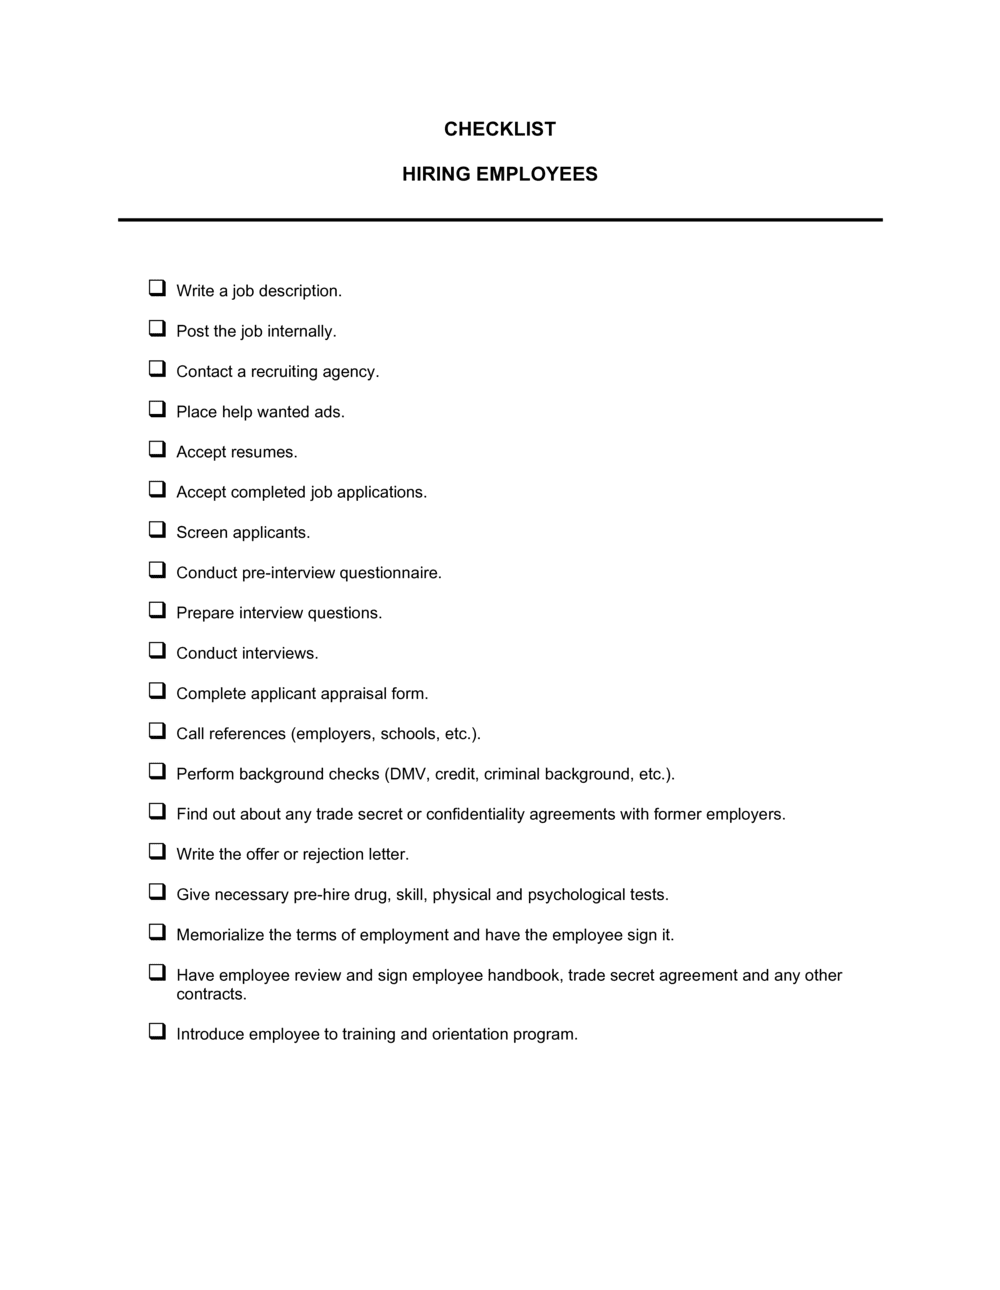 Business-in-a-Box's Checklist Hiring Employees Template